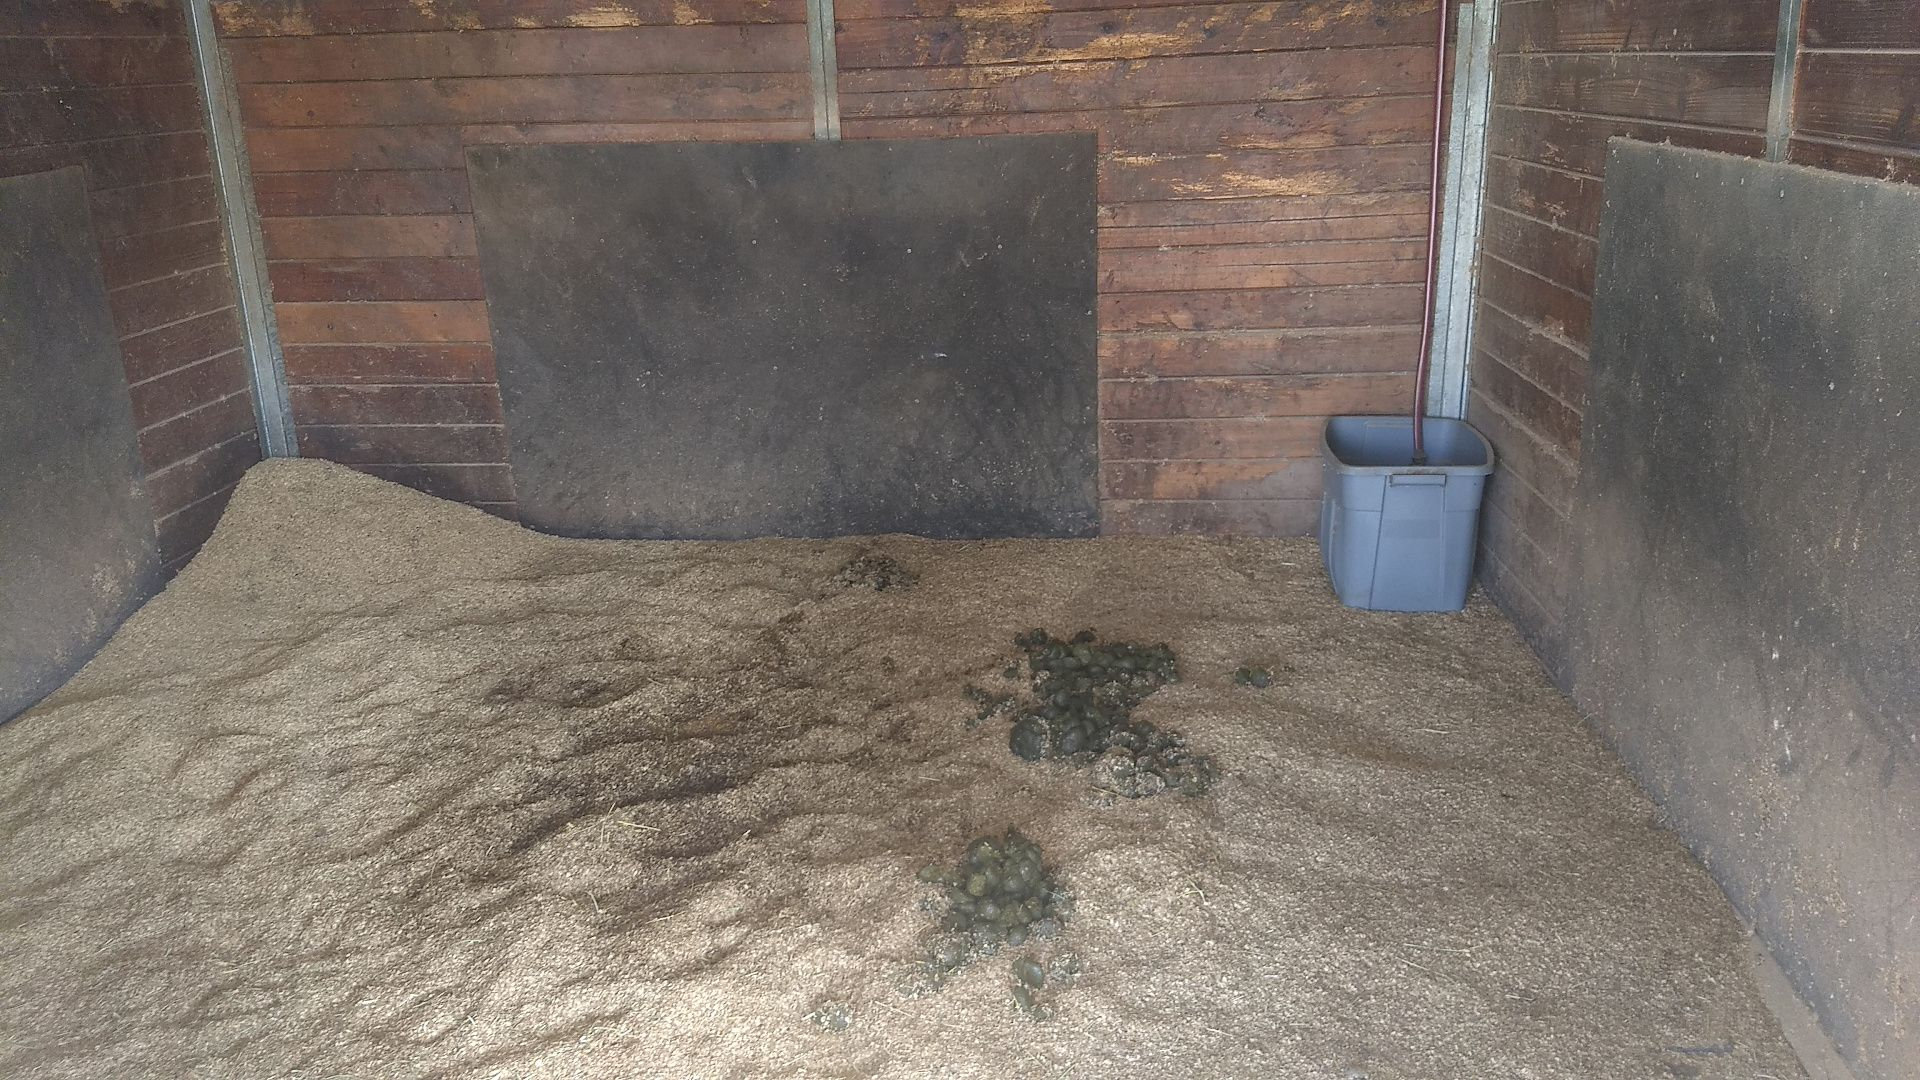 A square stall with a a pile of fresh bedding in one corner and a water bucket in the other. Some manure and soiled bedding are in the middle.